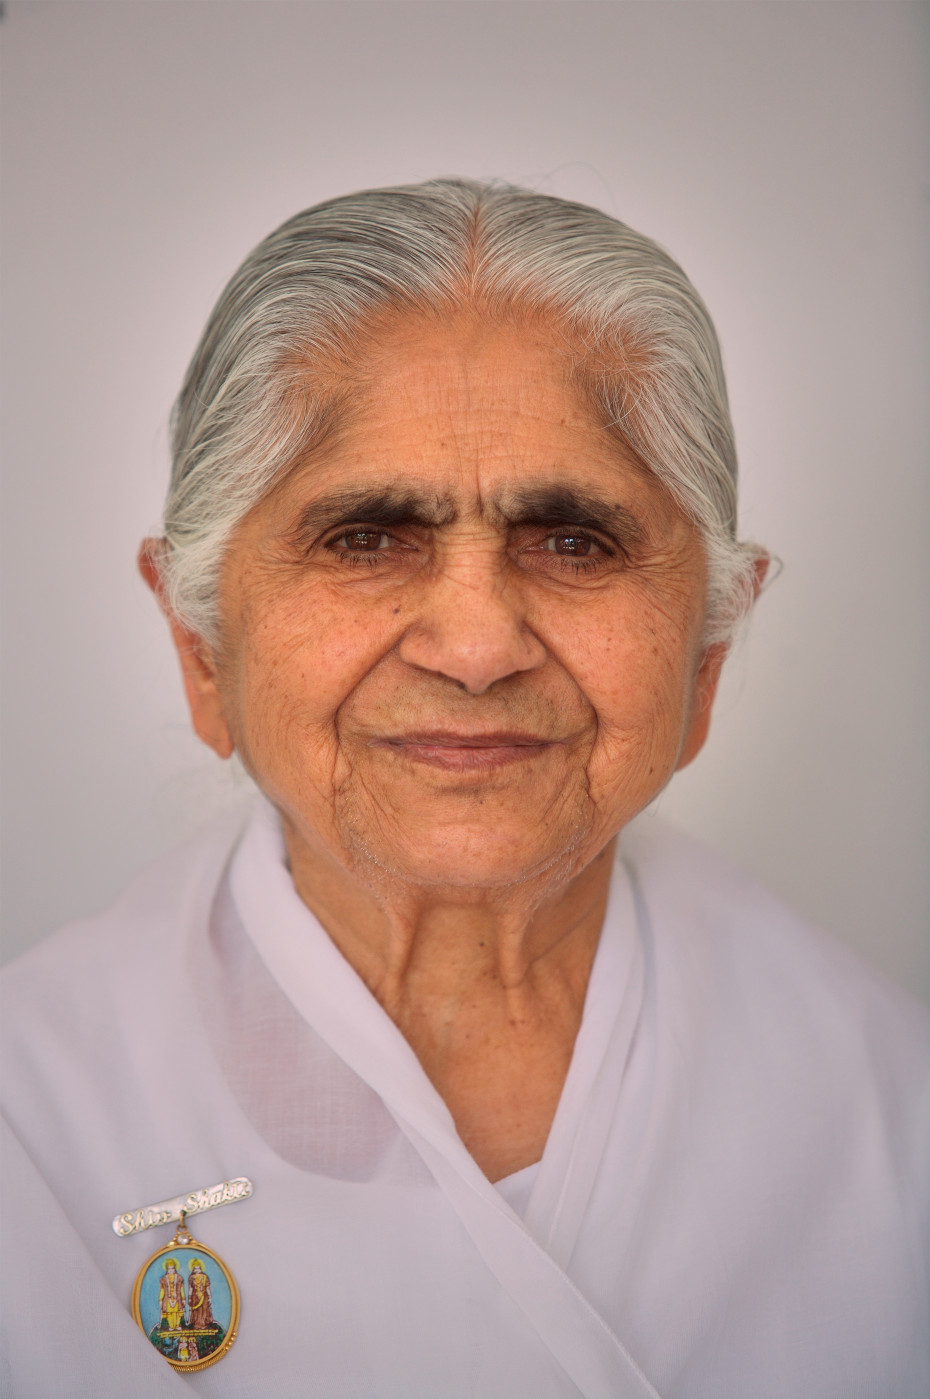 Dadi janki portrait 1 taken Oct 2007 small